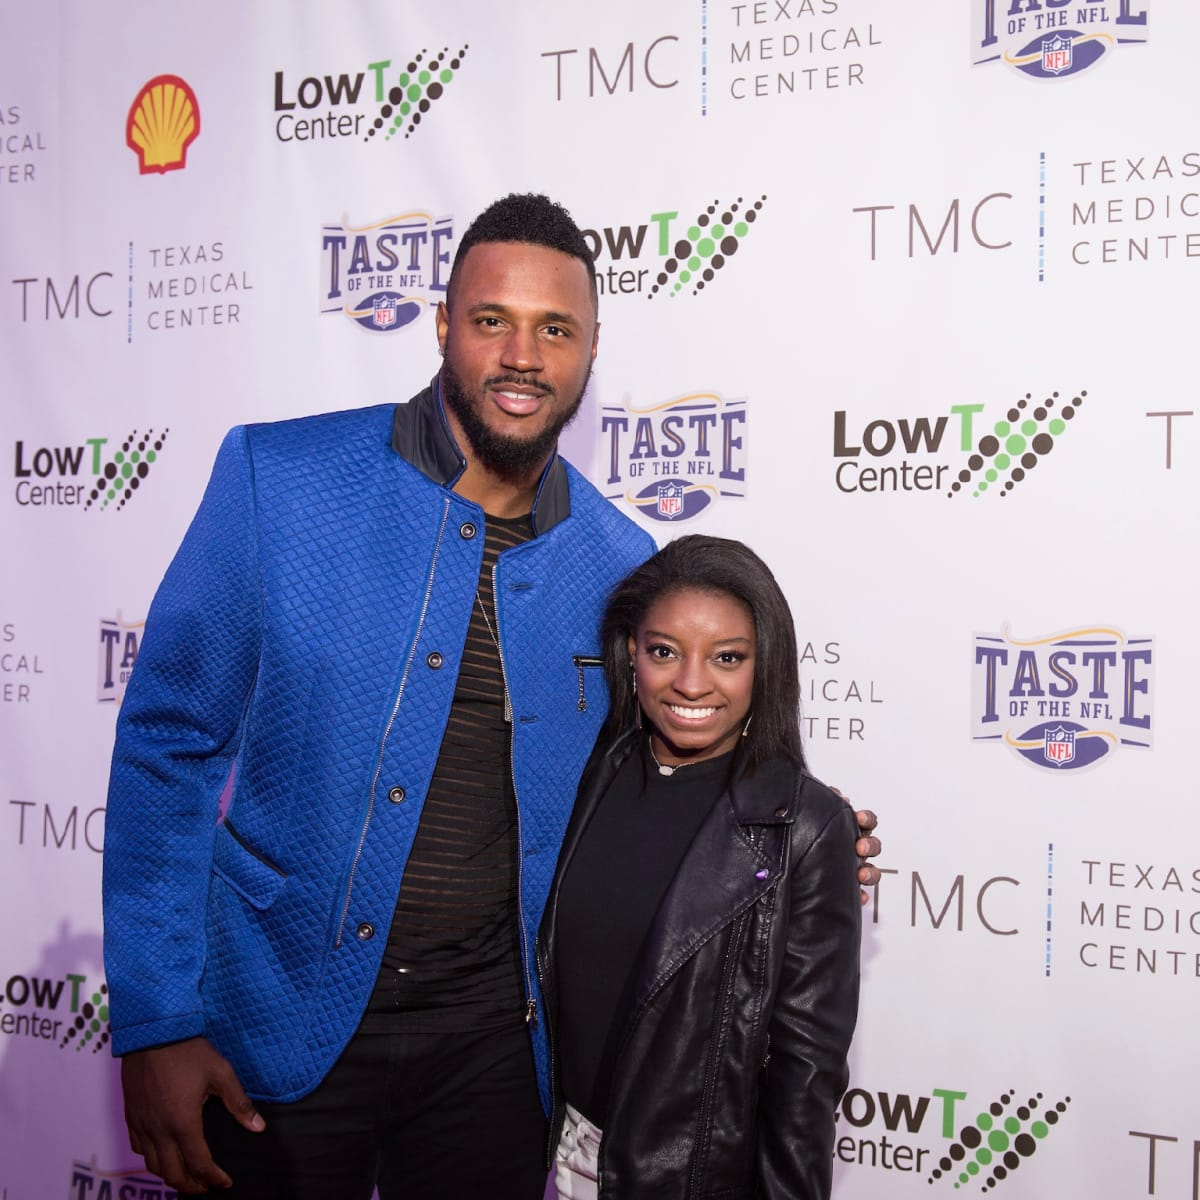 Taste of the NFL James Anderson Simone Biles